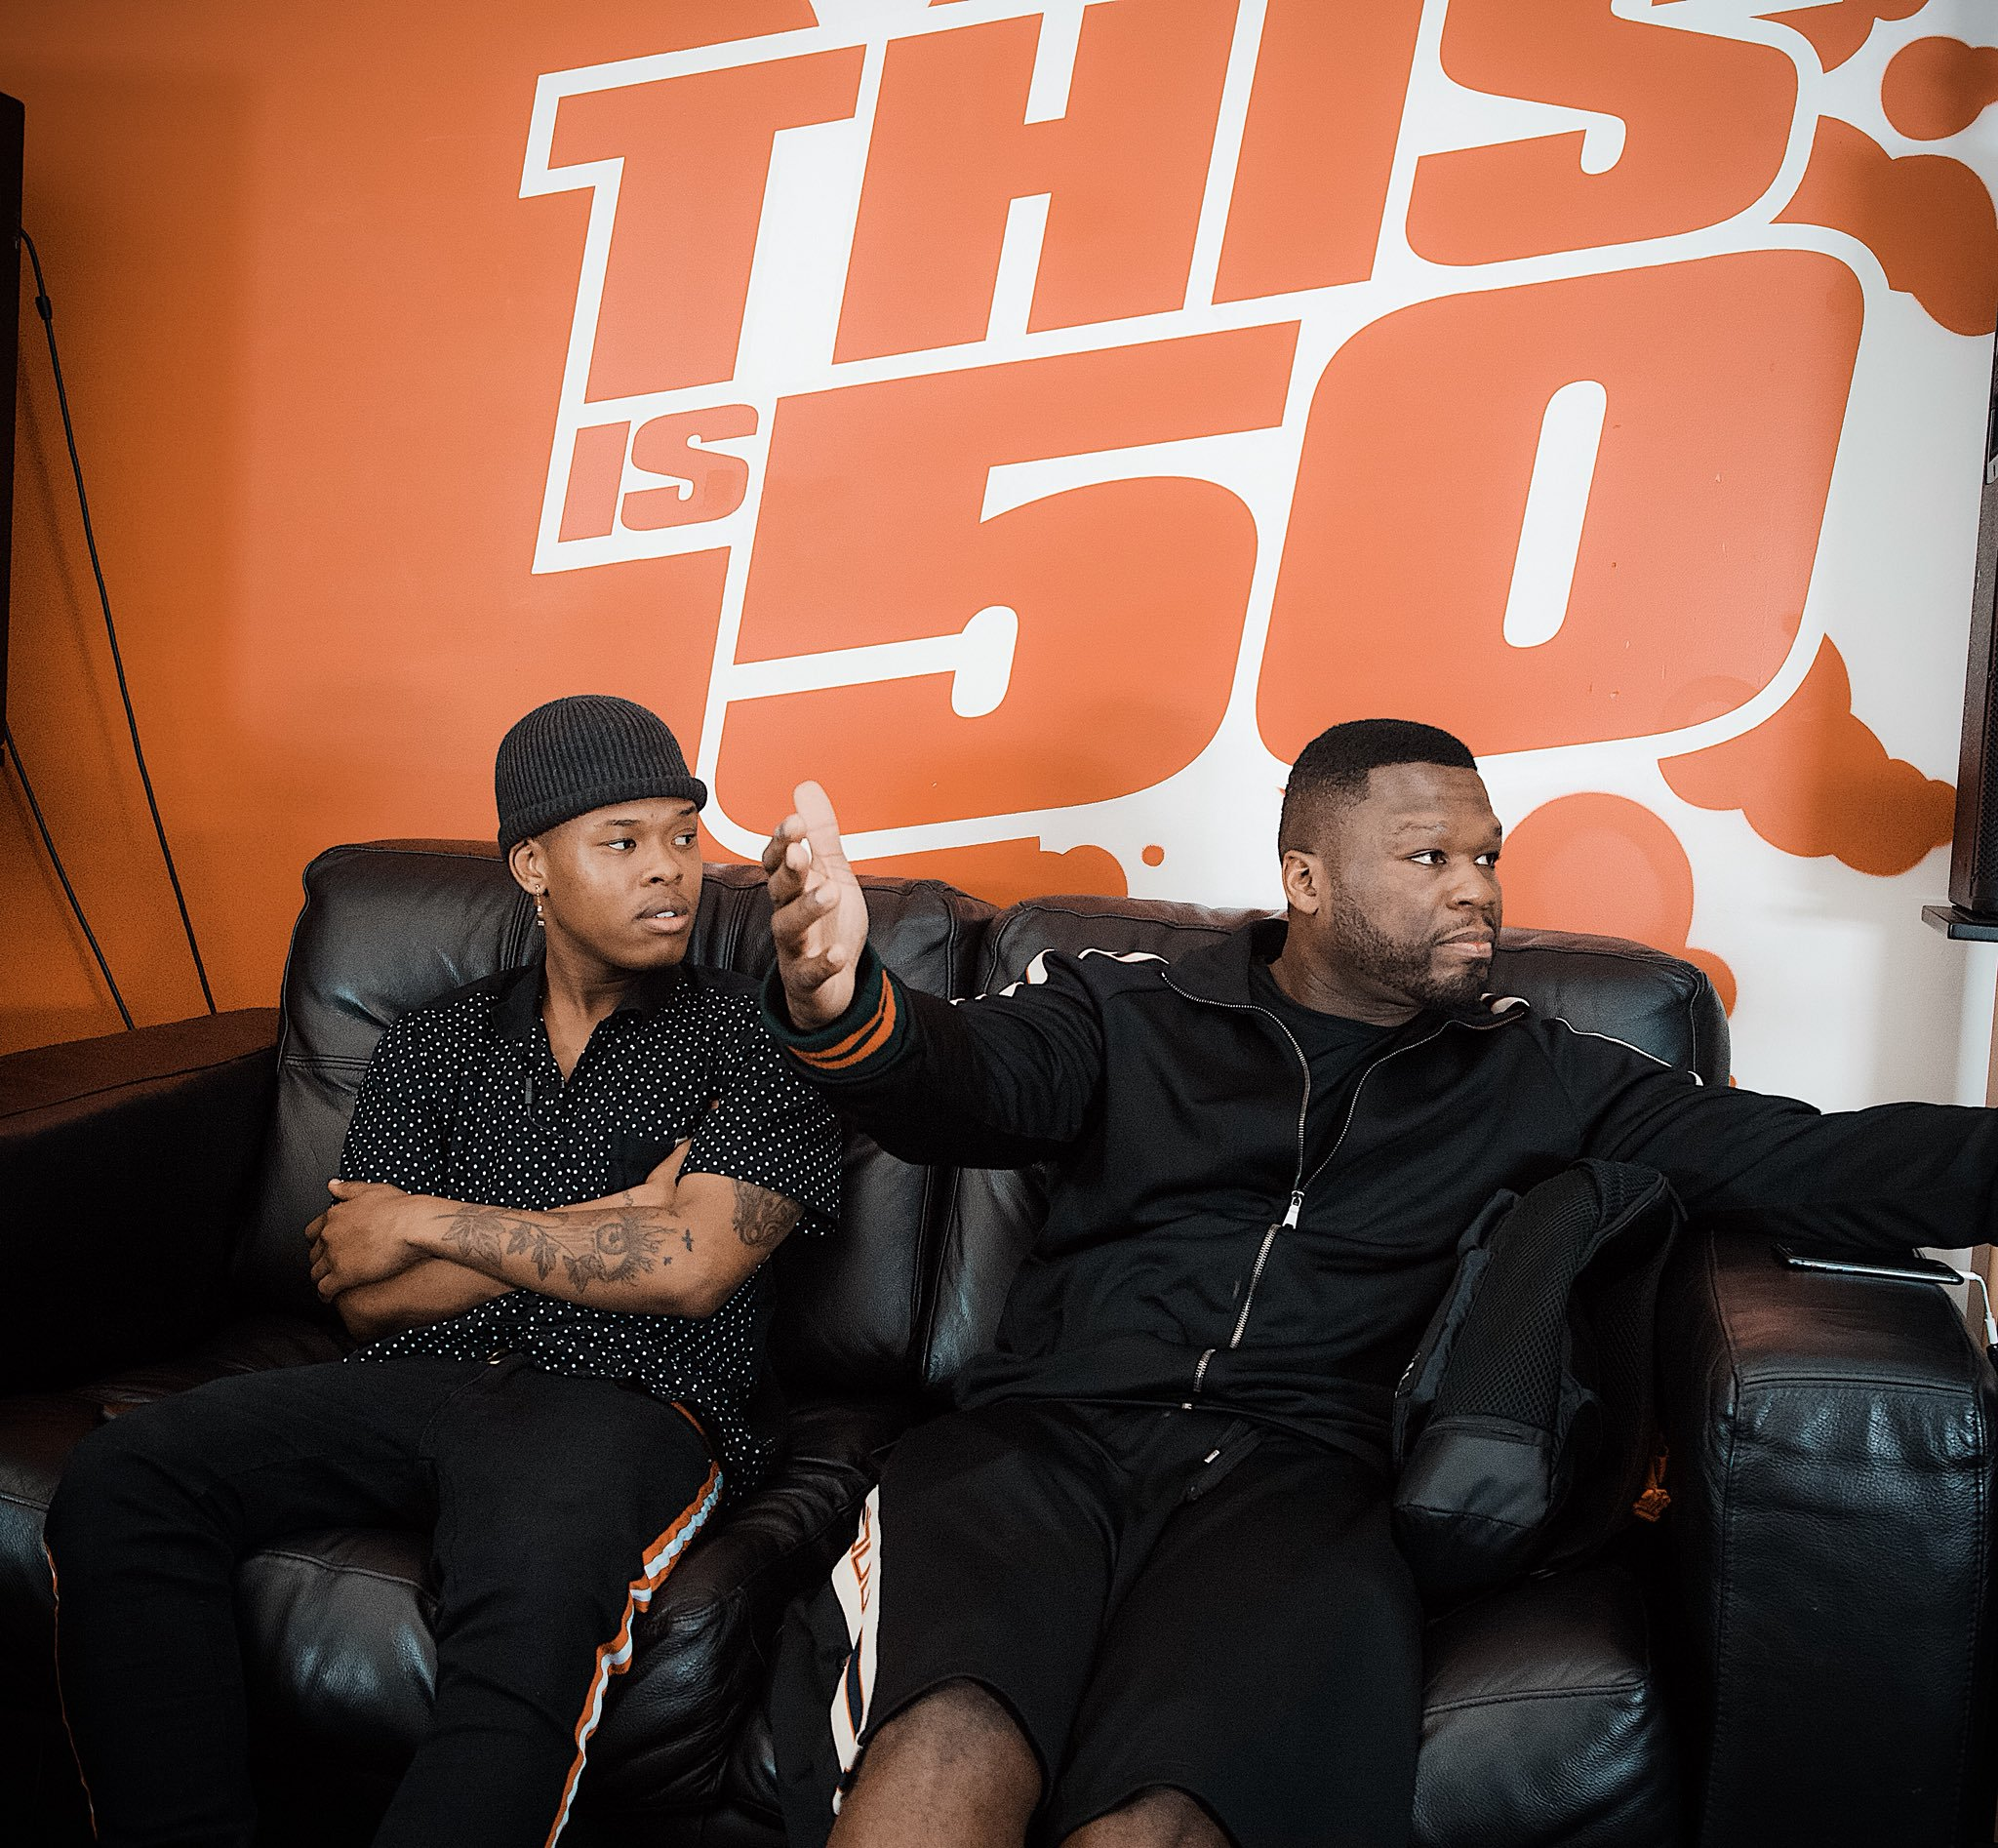 Photo of Awful HAIRCUT: Nasty C covers his hair while meeting with 50 Cent (PICTURES)